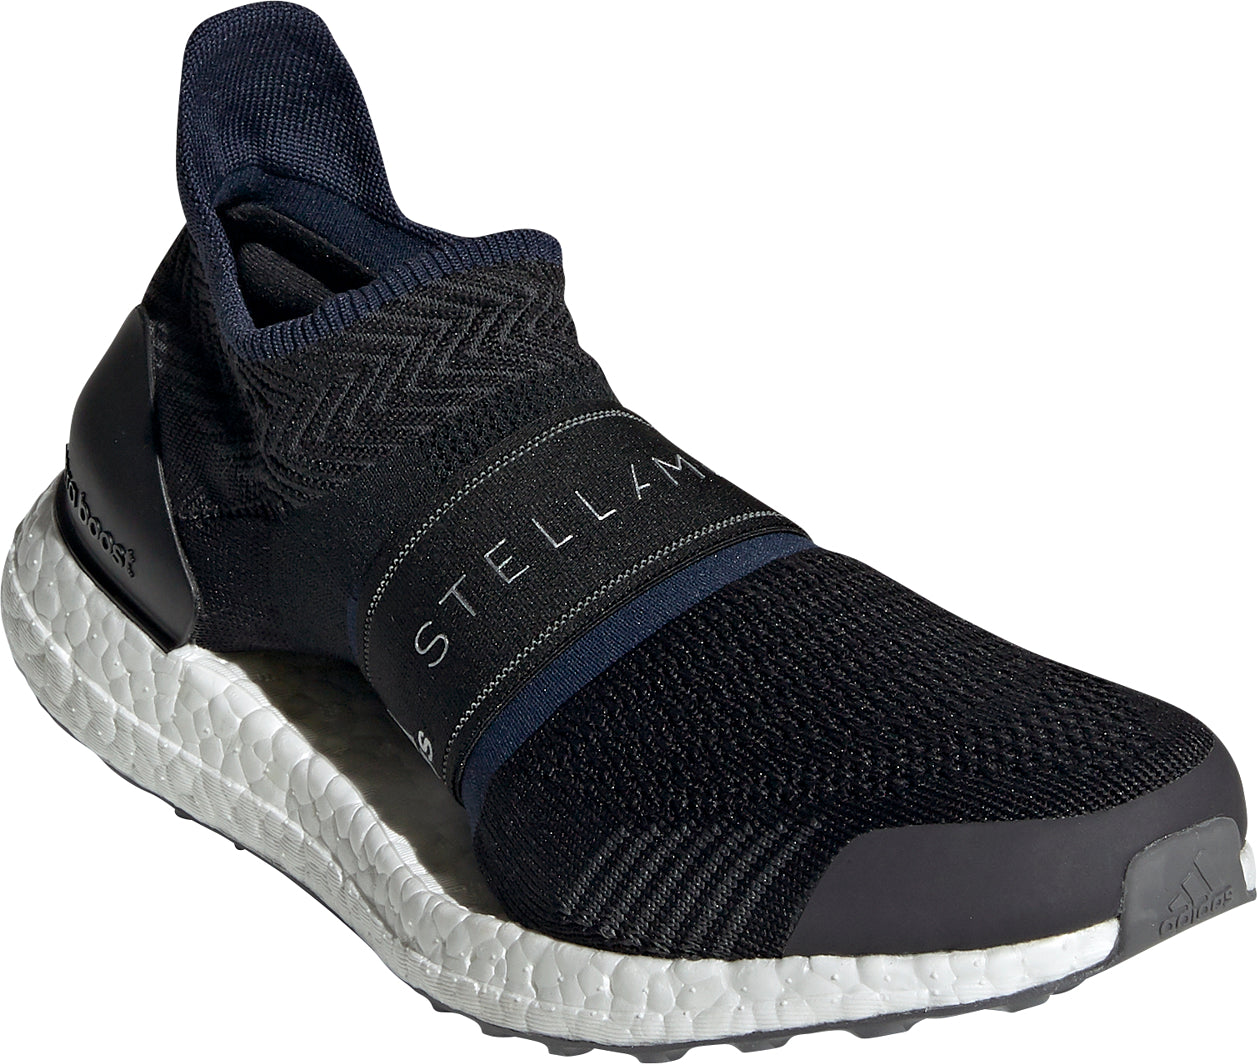 low priced a2a36 f7cbc Adidas UltraBOOST X 3.D. Shoes by Stella McCartney - Women's